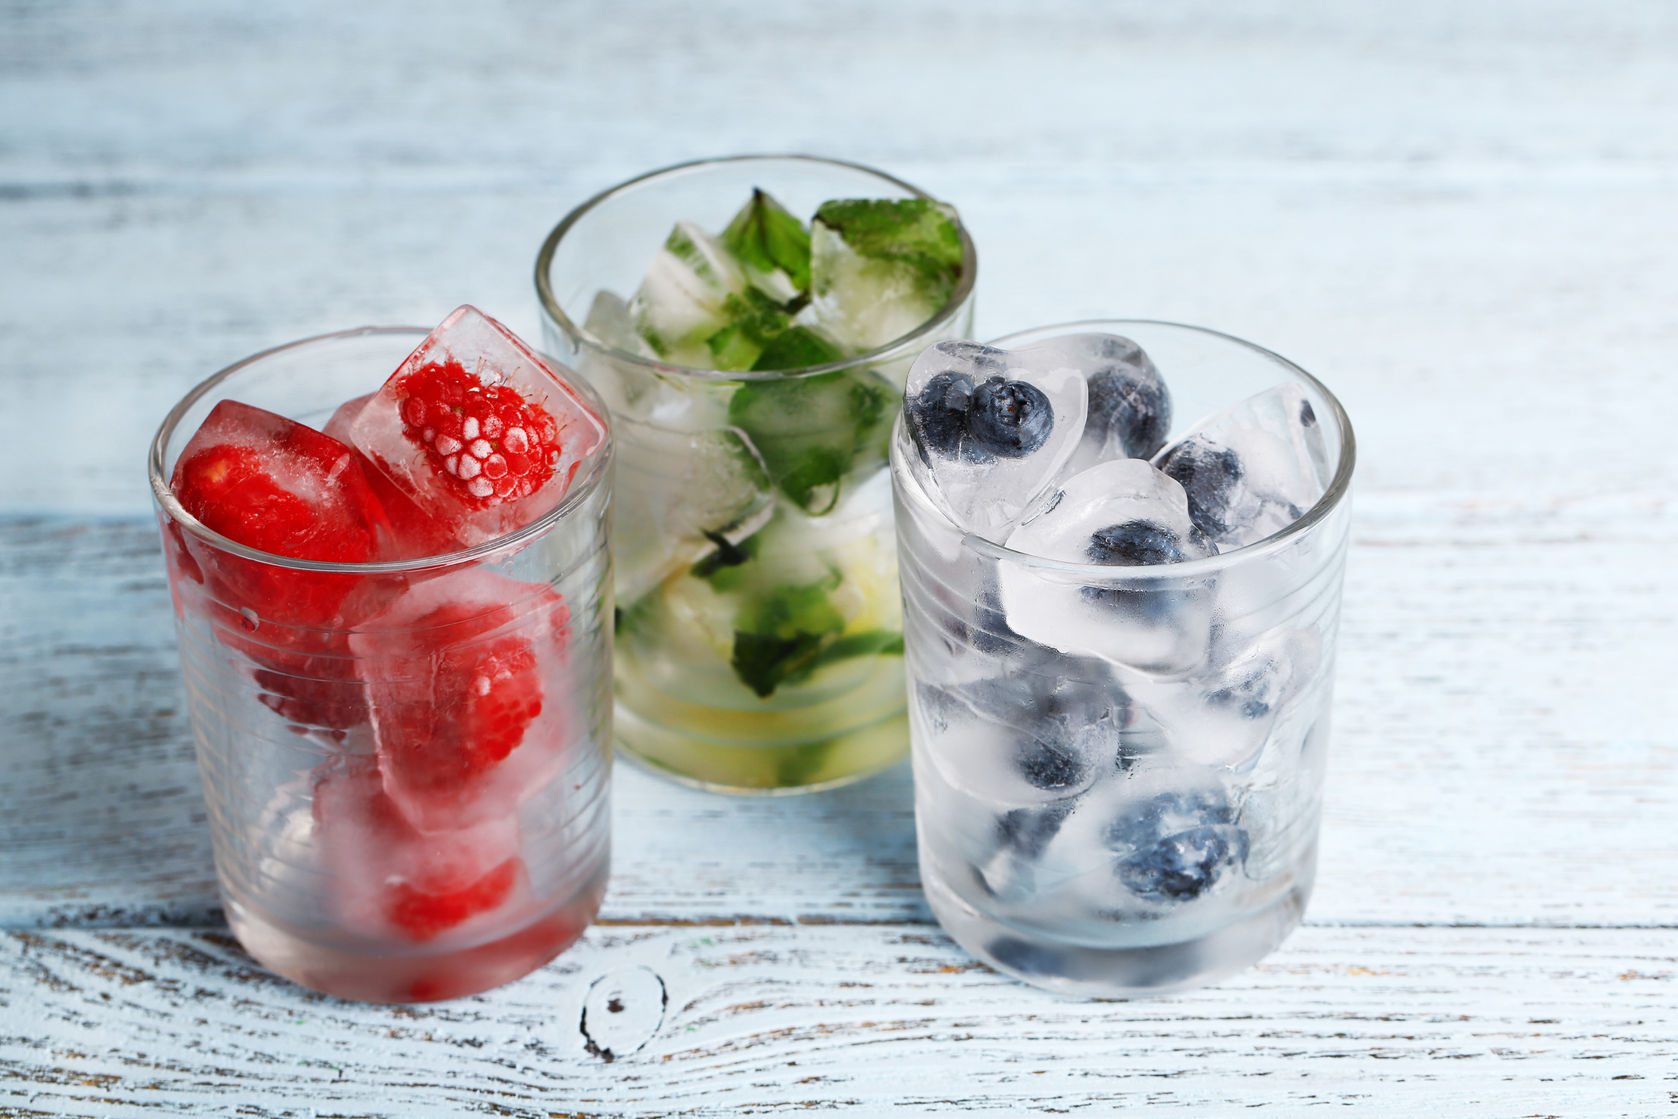 30502713 - ice cubes with mint leaves, raspberry and blueberry in glasses, on color wooden background